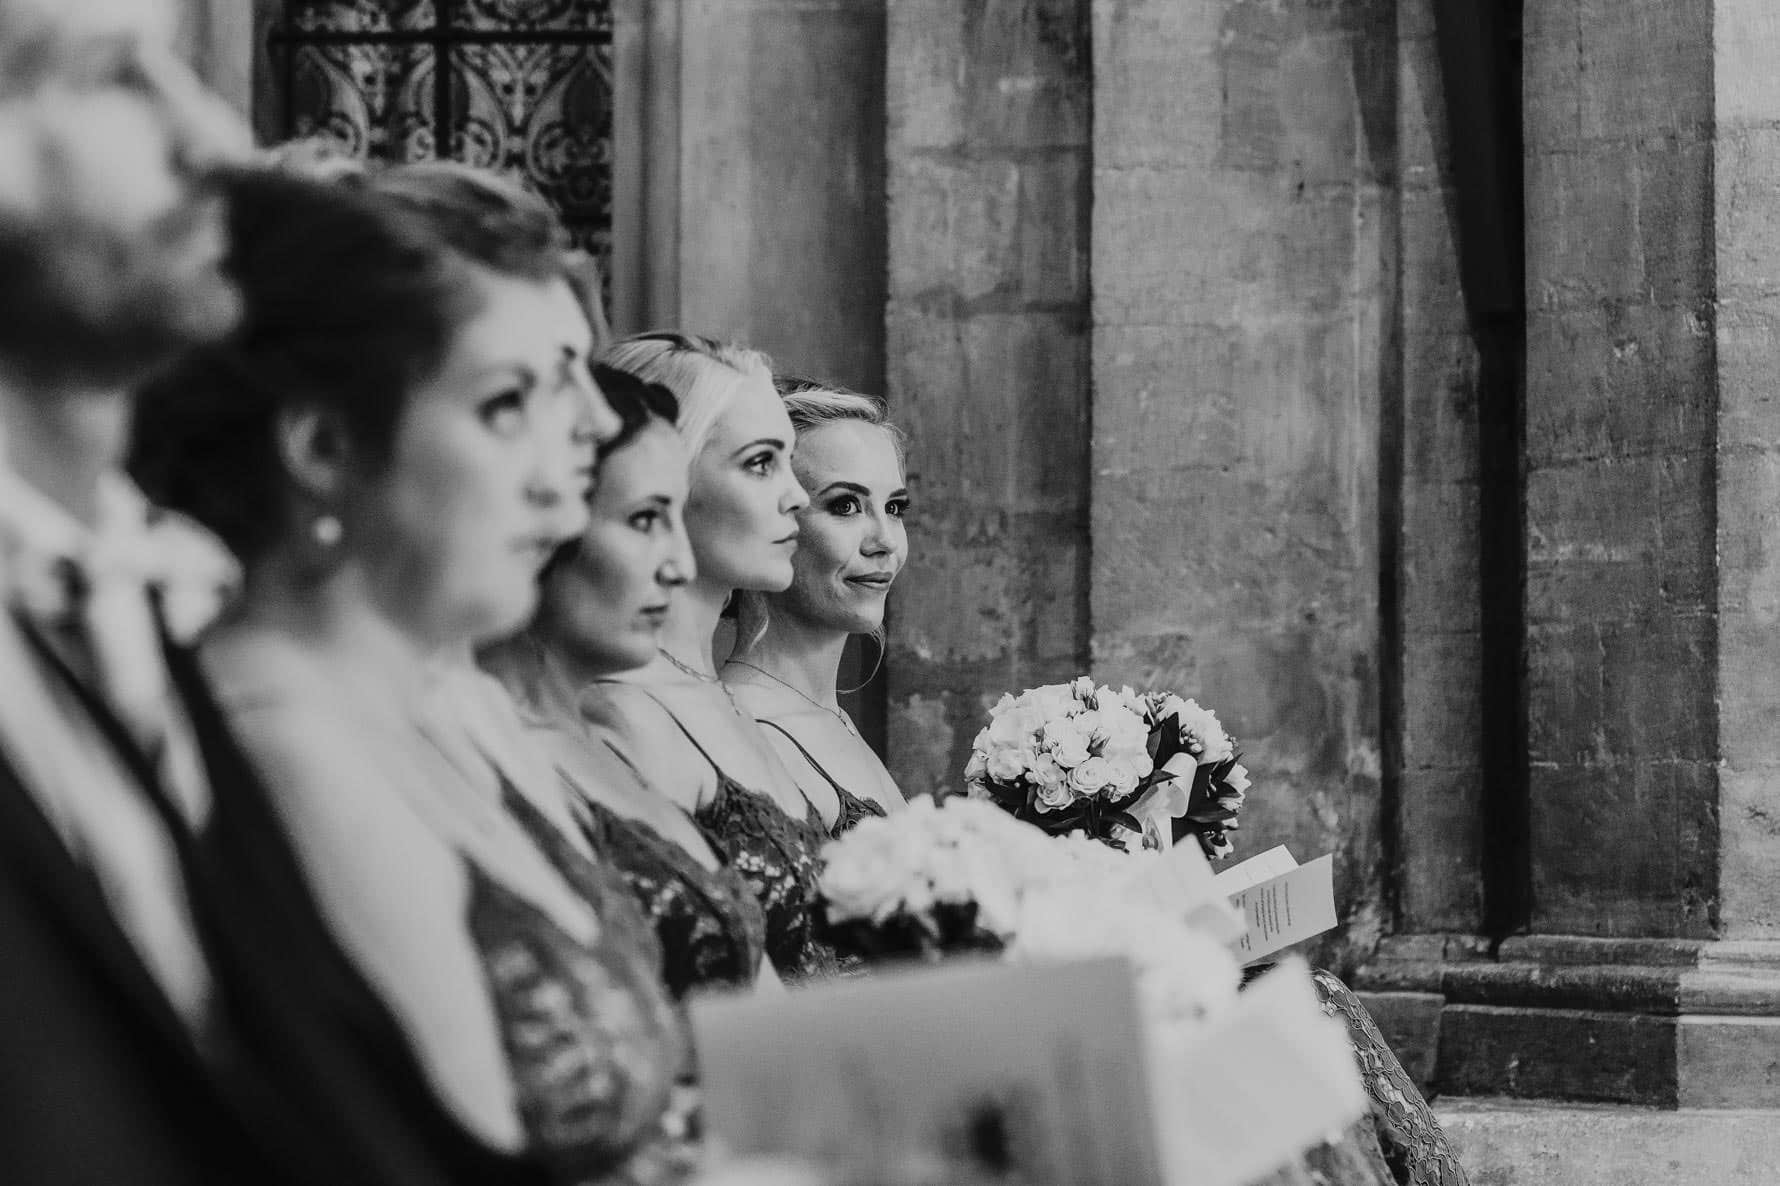 Bridesmaids looking on at the wedding ceremony